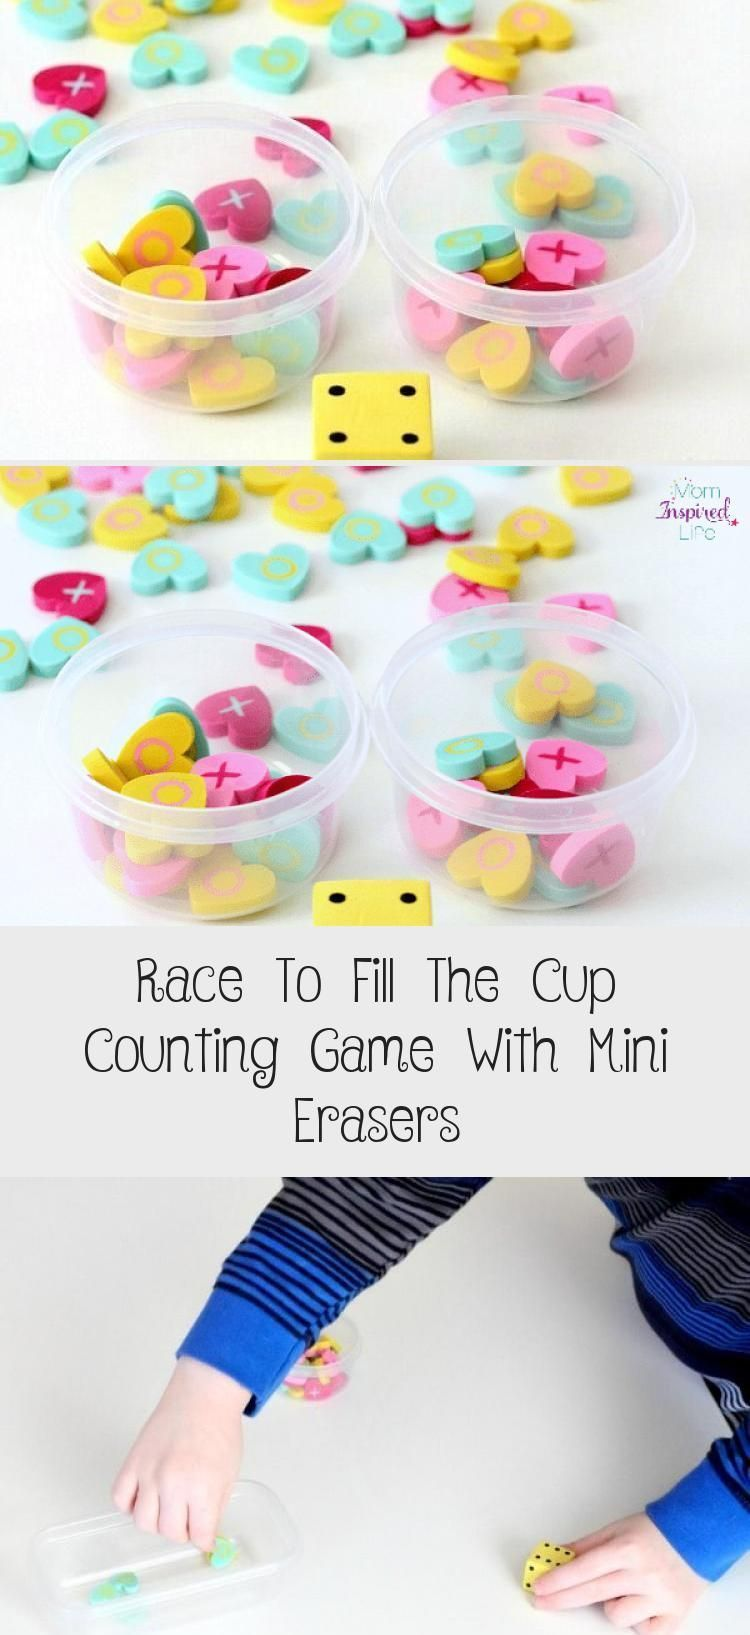 Race To Fill The Cup Counting Game With Mini Erasers - Valentines Day Gifts Idea..., #counting #Cup #Day #Erasers #fill #Game #Gifts #idea #Mini #Race #Valentines